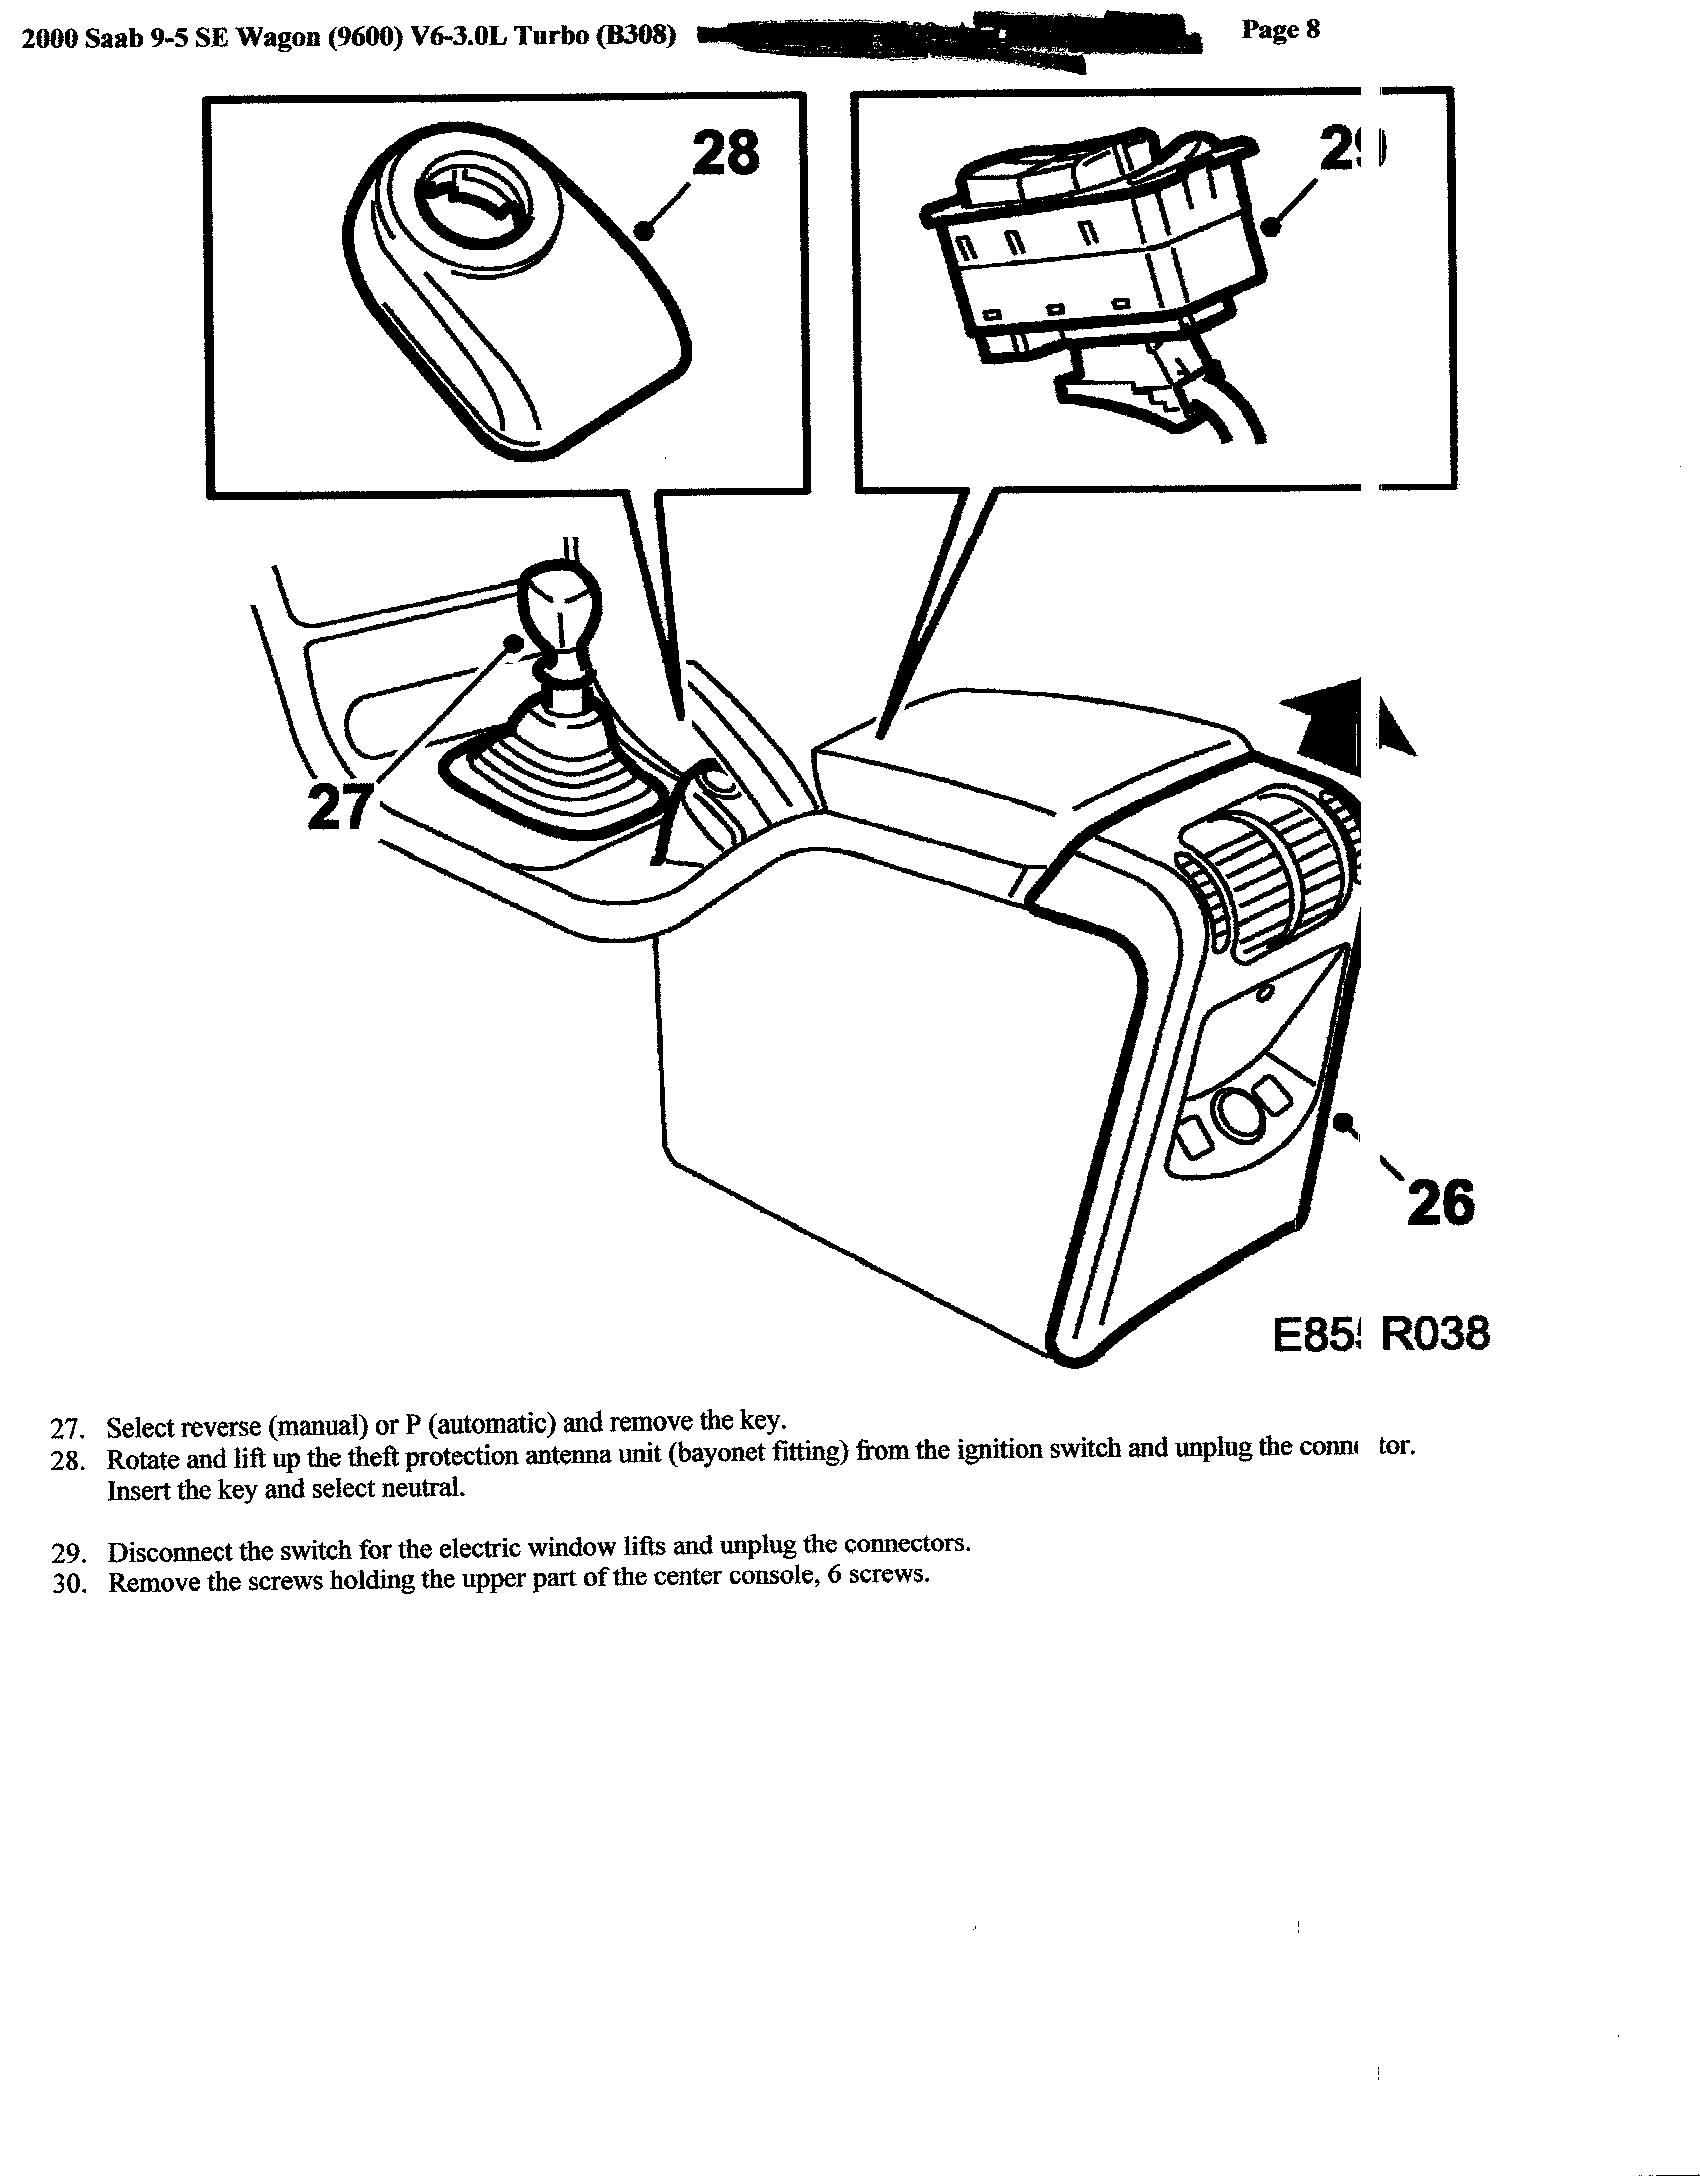 Ram 2500 Replacement Fuel Tank further 97 Corolla Fuel Relay Location besides Buick Rainier Fuse Box in addition Transmission Issue 932361 as well 06 Acura Mdx Fuse Box. on 2006 acura tl fuel filter location